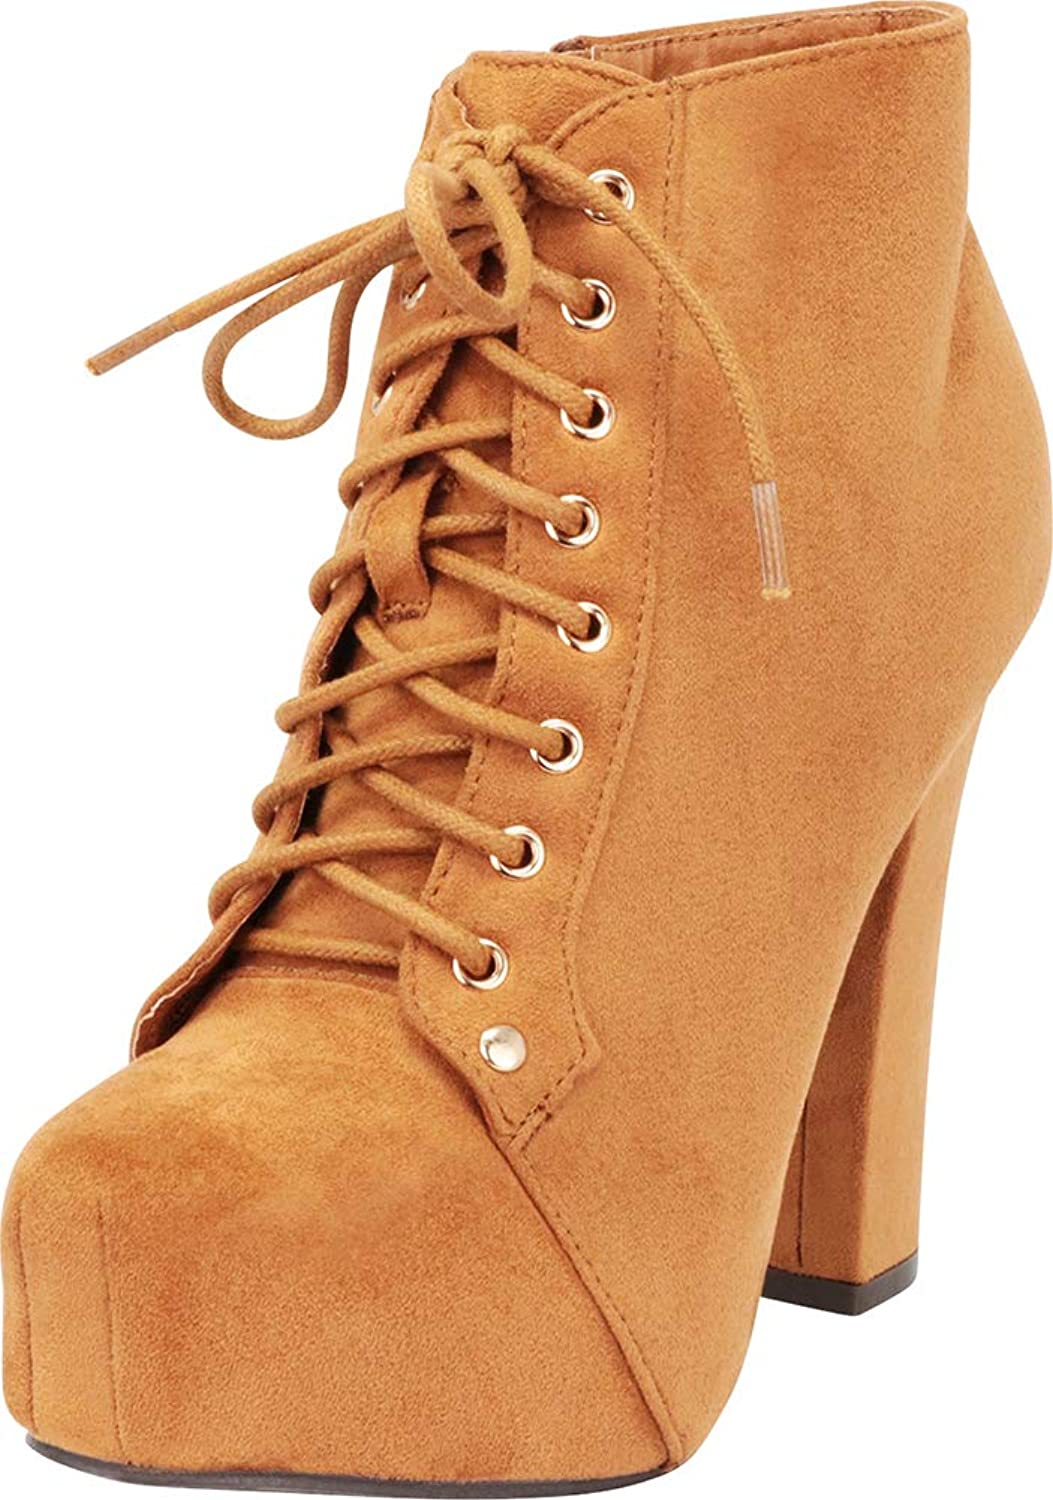 Cambridge Select Women's Lace-up Platform Chunky High Heel Ankle Bootie